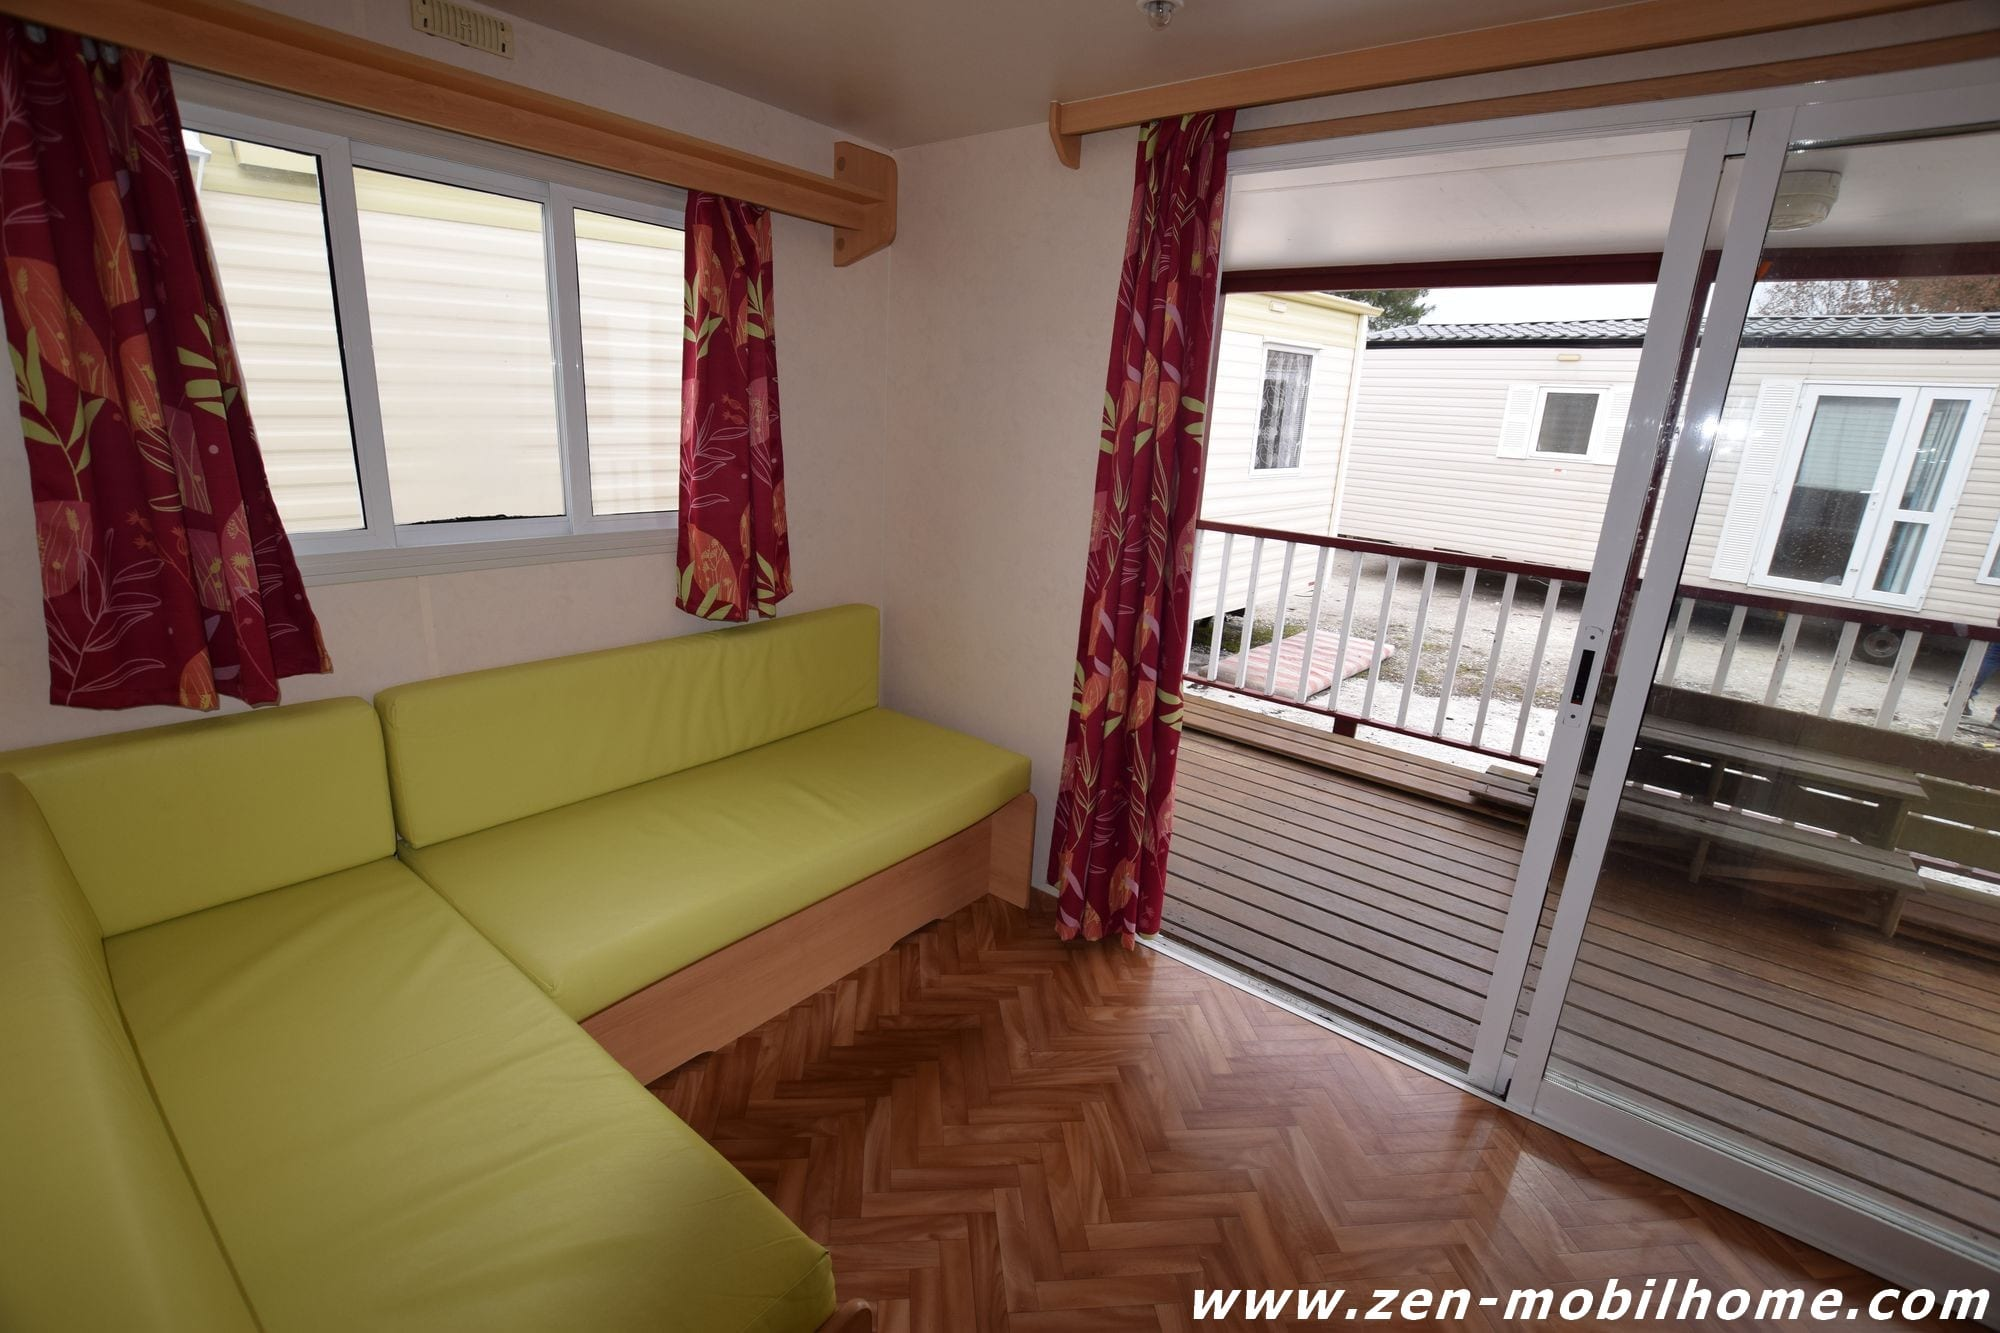 Terrasse Bois Mobil Home Occasion - Sun Roller terrasse Mobil home d'occasion 3 700 u20ac Zen Mobil homes